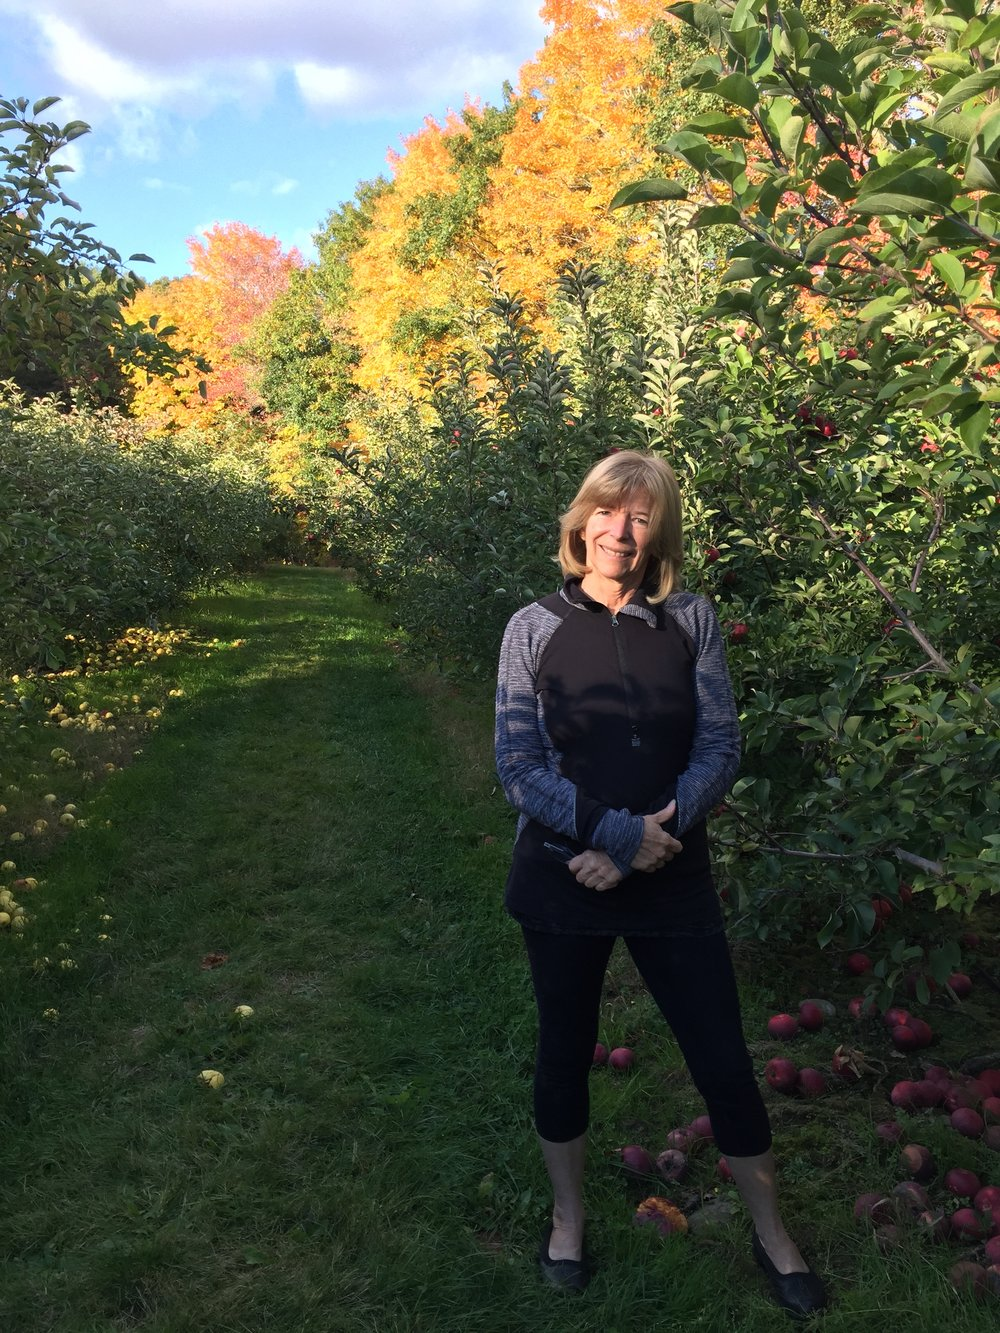 Enjoying a beautiful fall day at an apple orchard